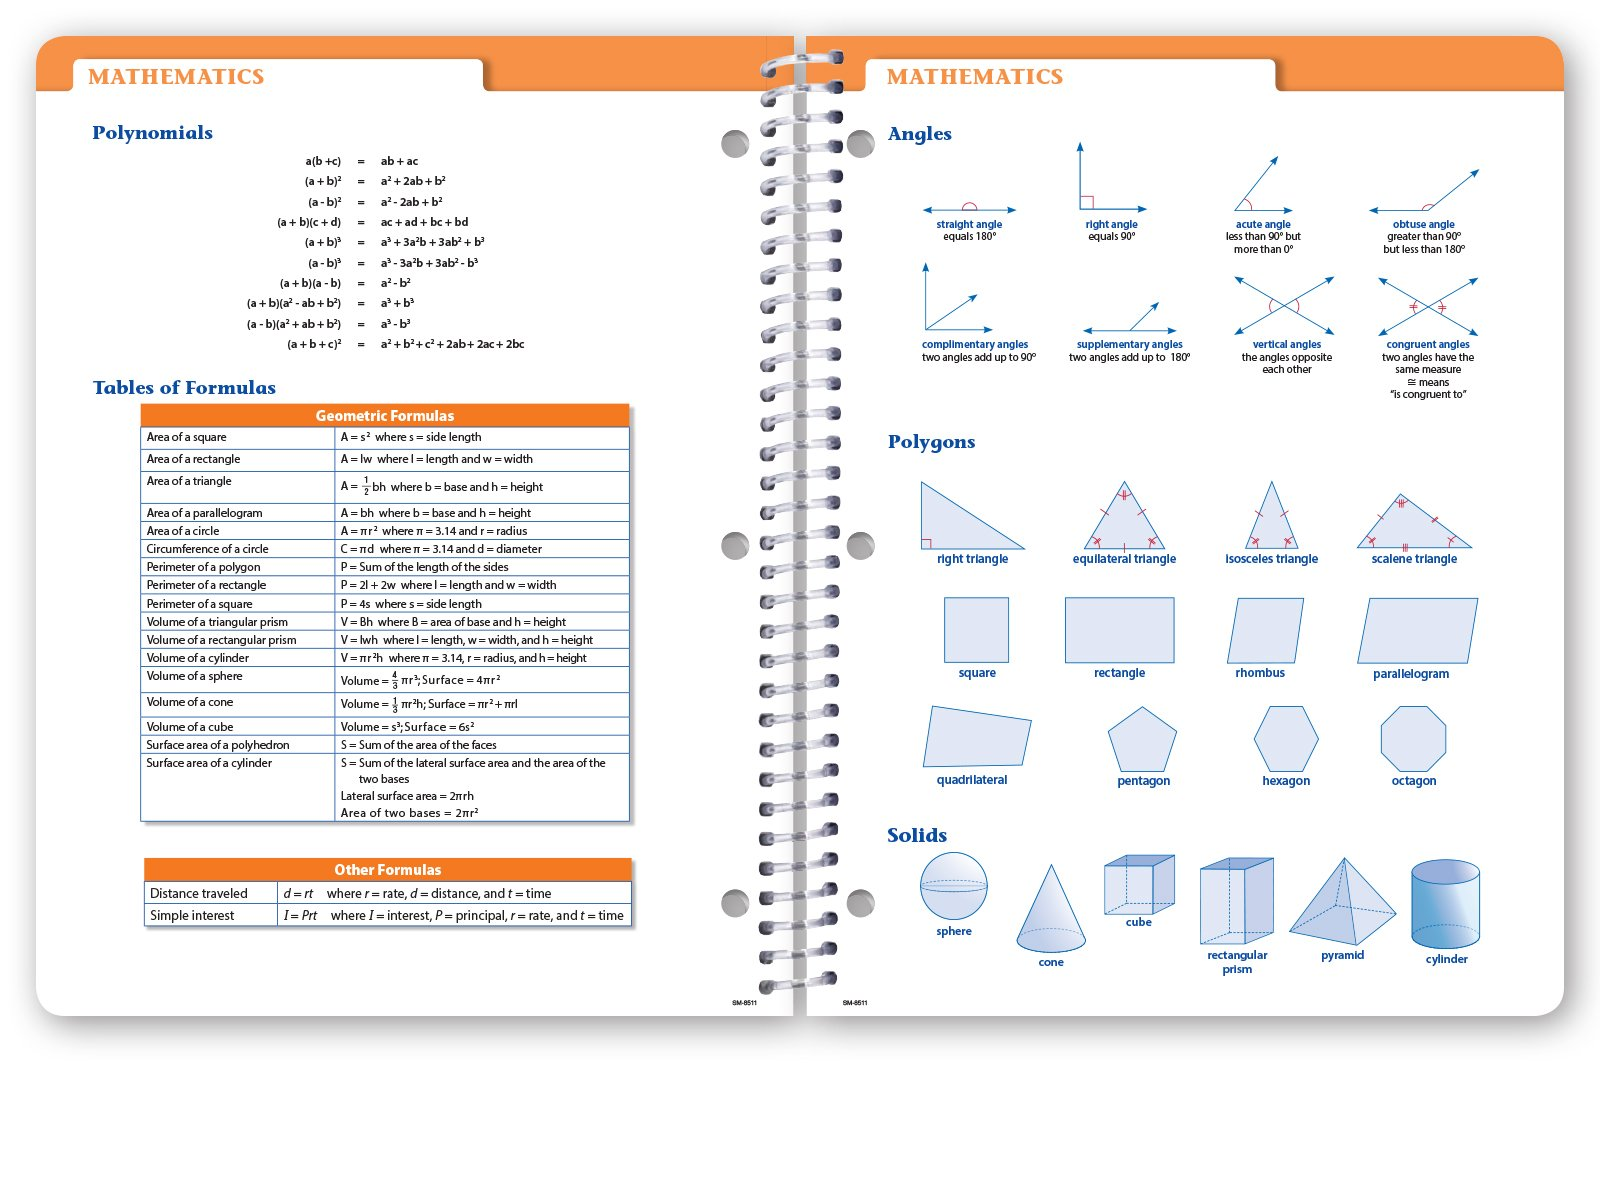 Hardcover Dated Middle School Or High School Student Planner for Academic Year 2018-2019 (Matrix Style - 8.5''x11'' - Woodgrain Cover) - Bonus Ruler/Bookmark and Planning Stickers by Global Datebooks (Image #9)